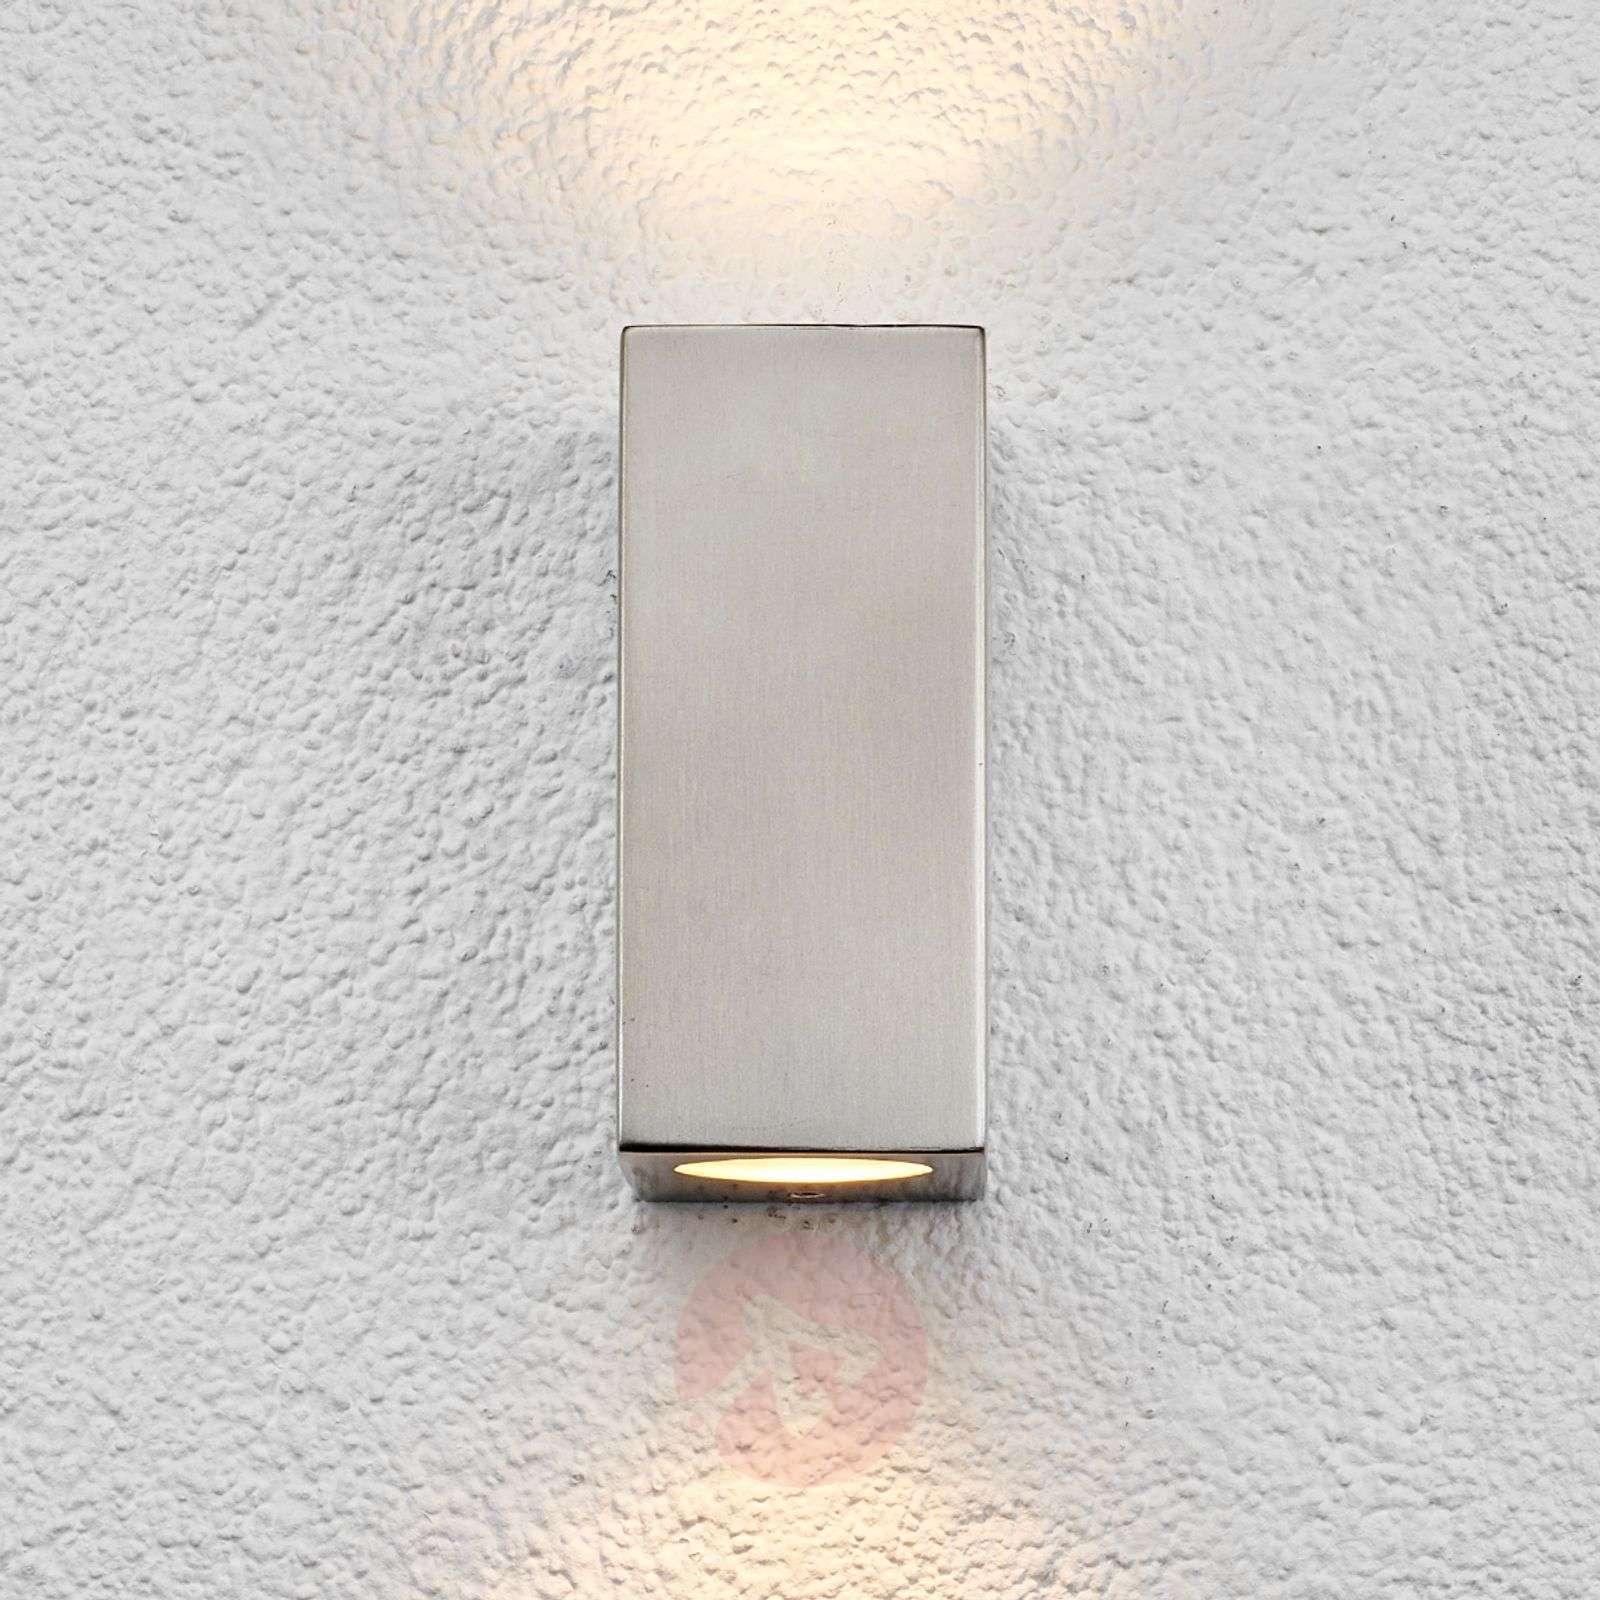 Square outdoor wall light Haven, stainless steel Lights.co.uk